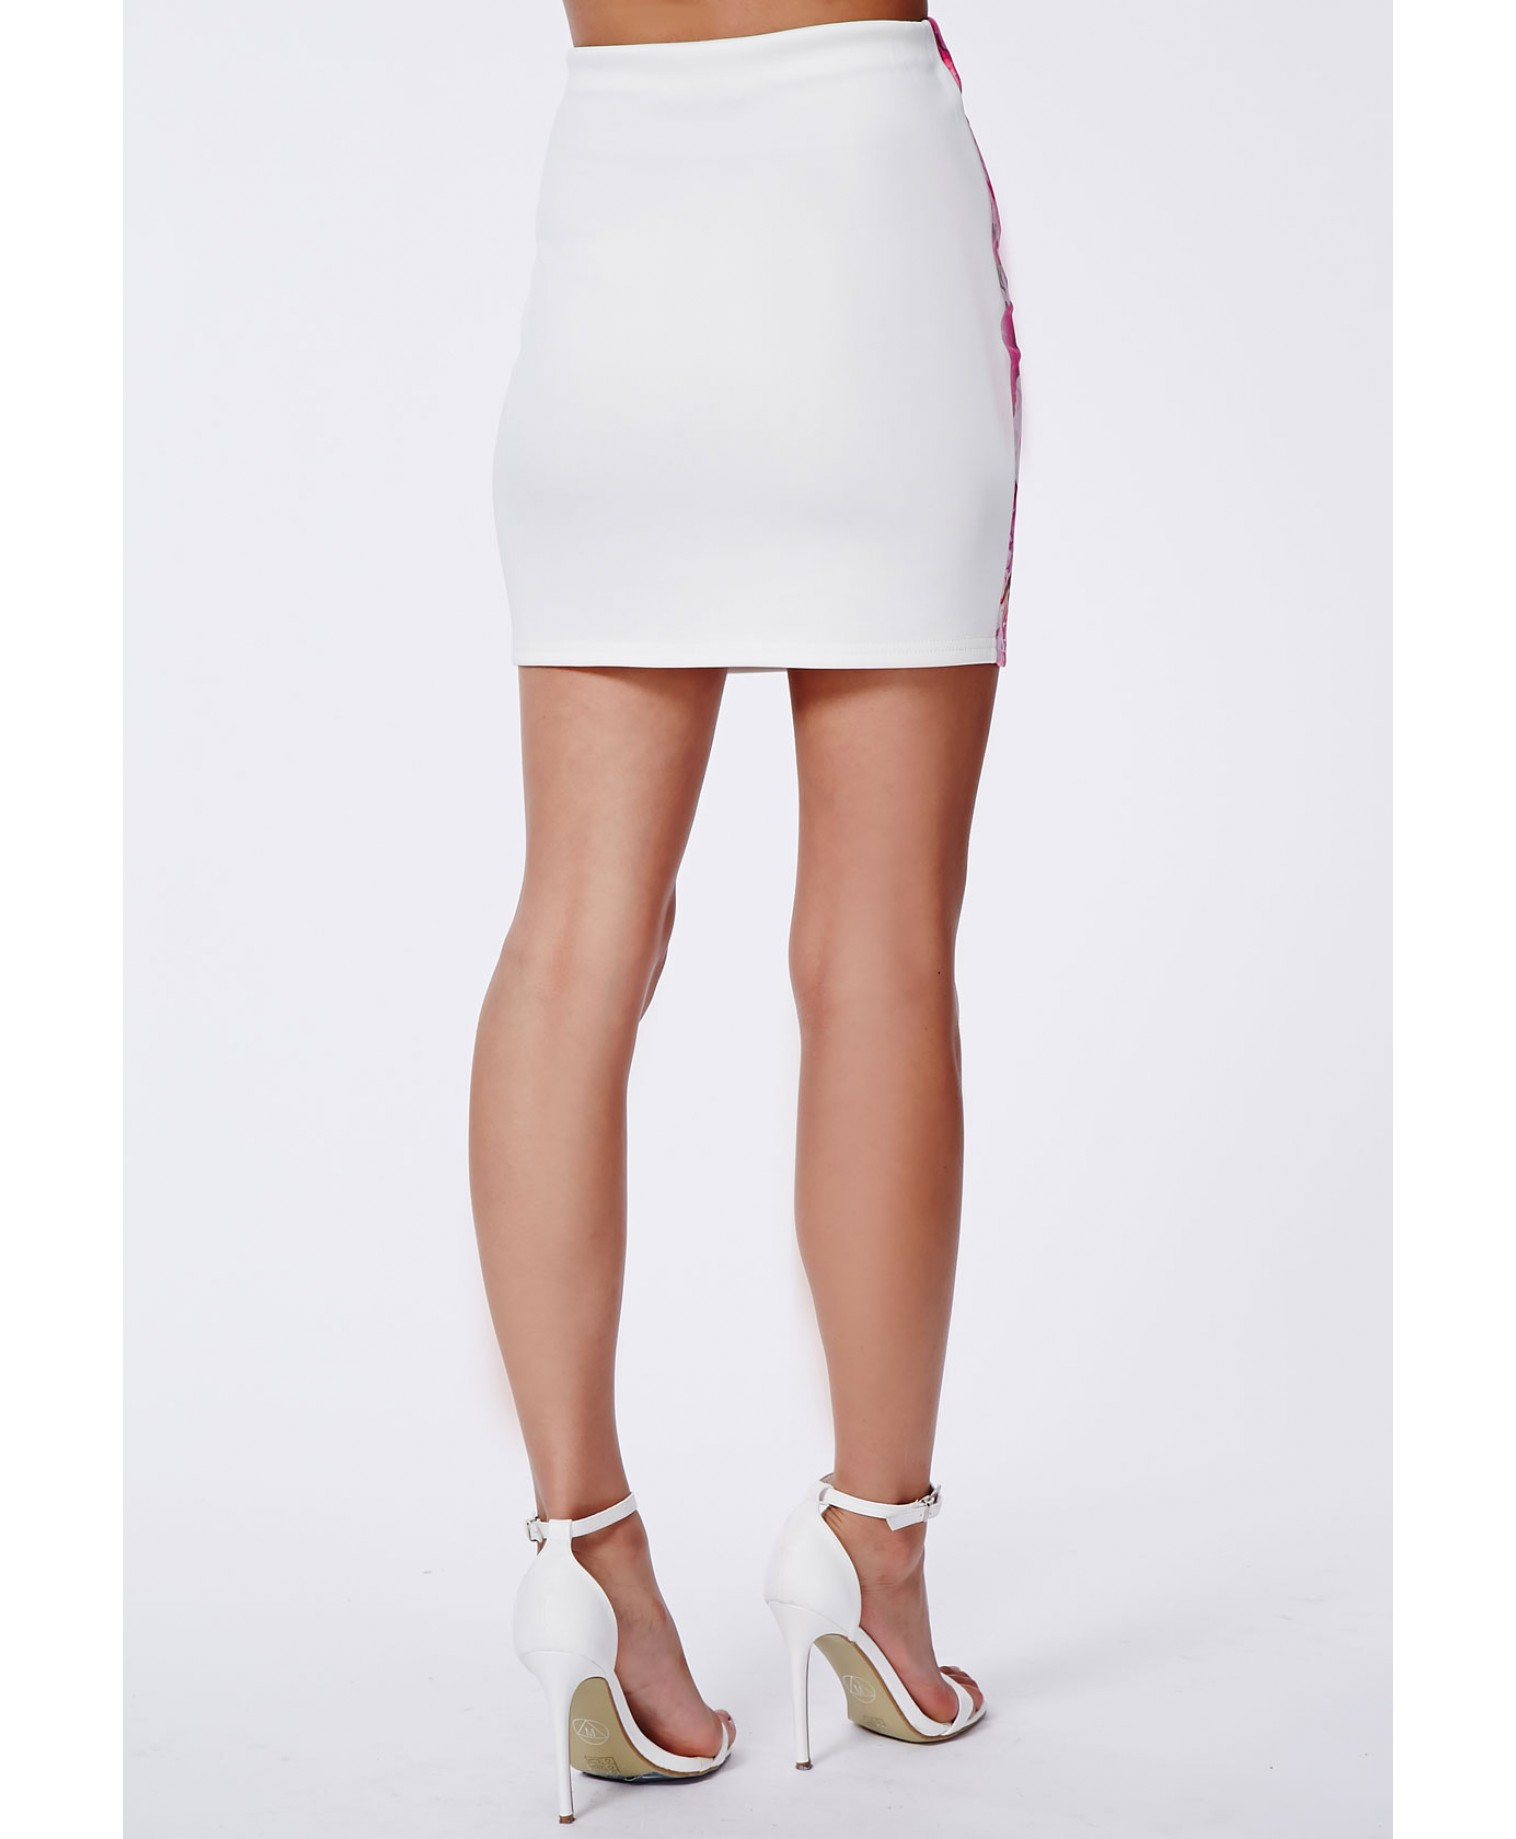 967739a567 Missguided Serenada Floral Side Panel Mini Skirt - Lyst